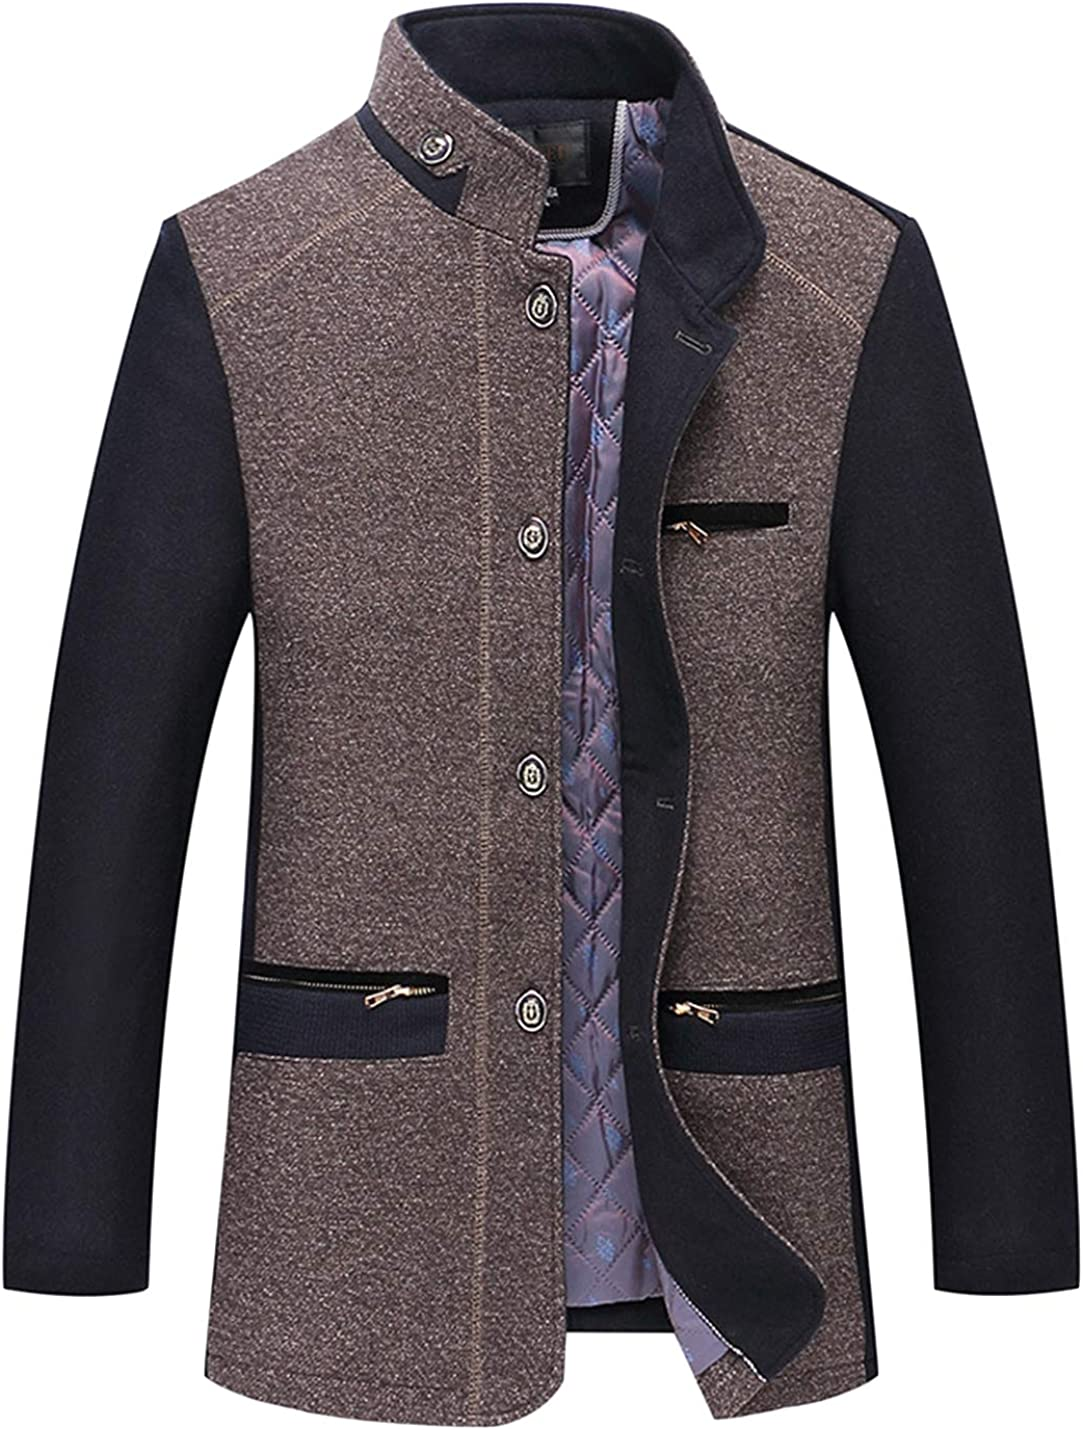 UANEO Men's Winter Casual Stand Collar Single Breasted Wool Blend Pea Coats (Coffee, X-Small)